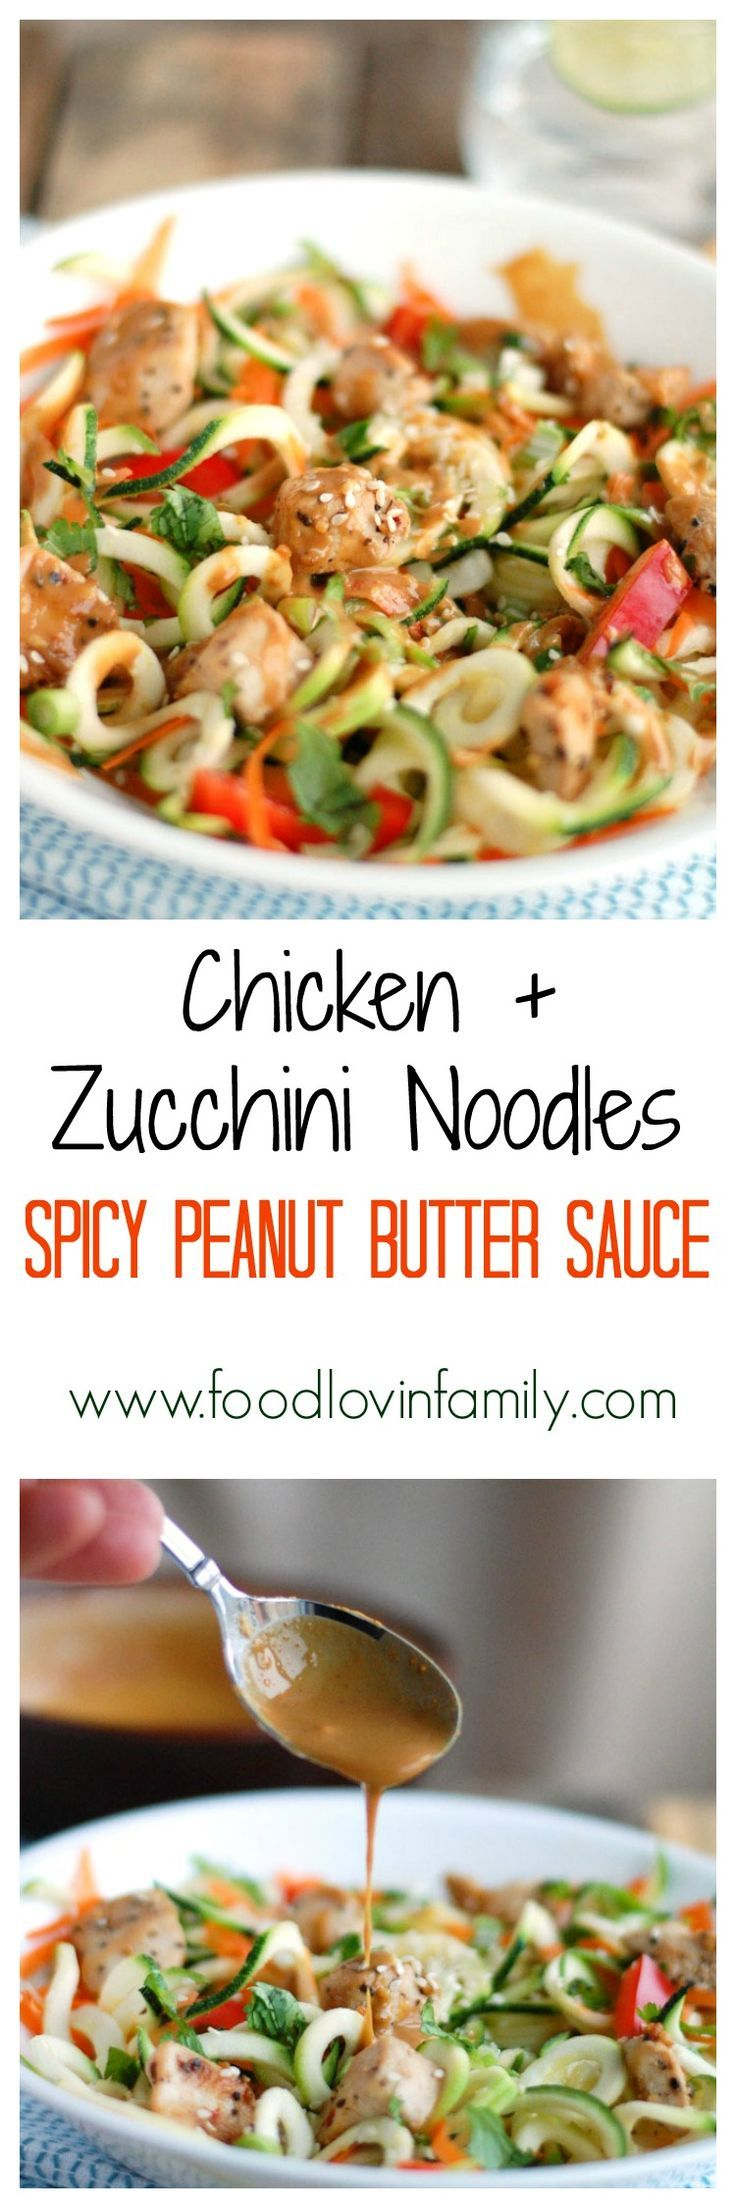 Chicken and Zucchini Noodles with Spicy Peanut Butter Sauce is a flavorful and low calorie meal. Great source of protein and veggies.  | http://www.foodlovinfamily.com/chicken-zucchini-noodles-spicy-peanut-butter-sauce/